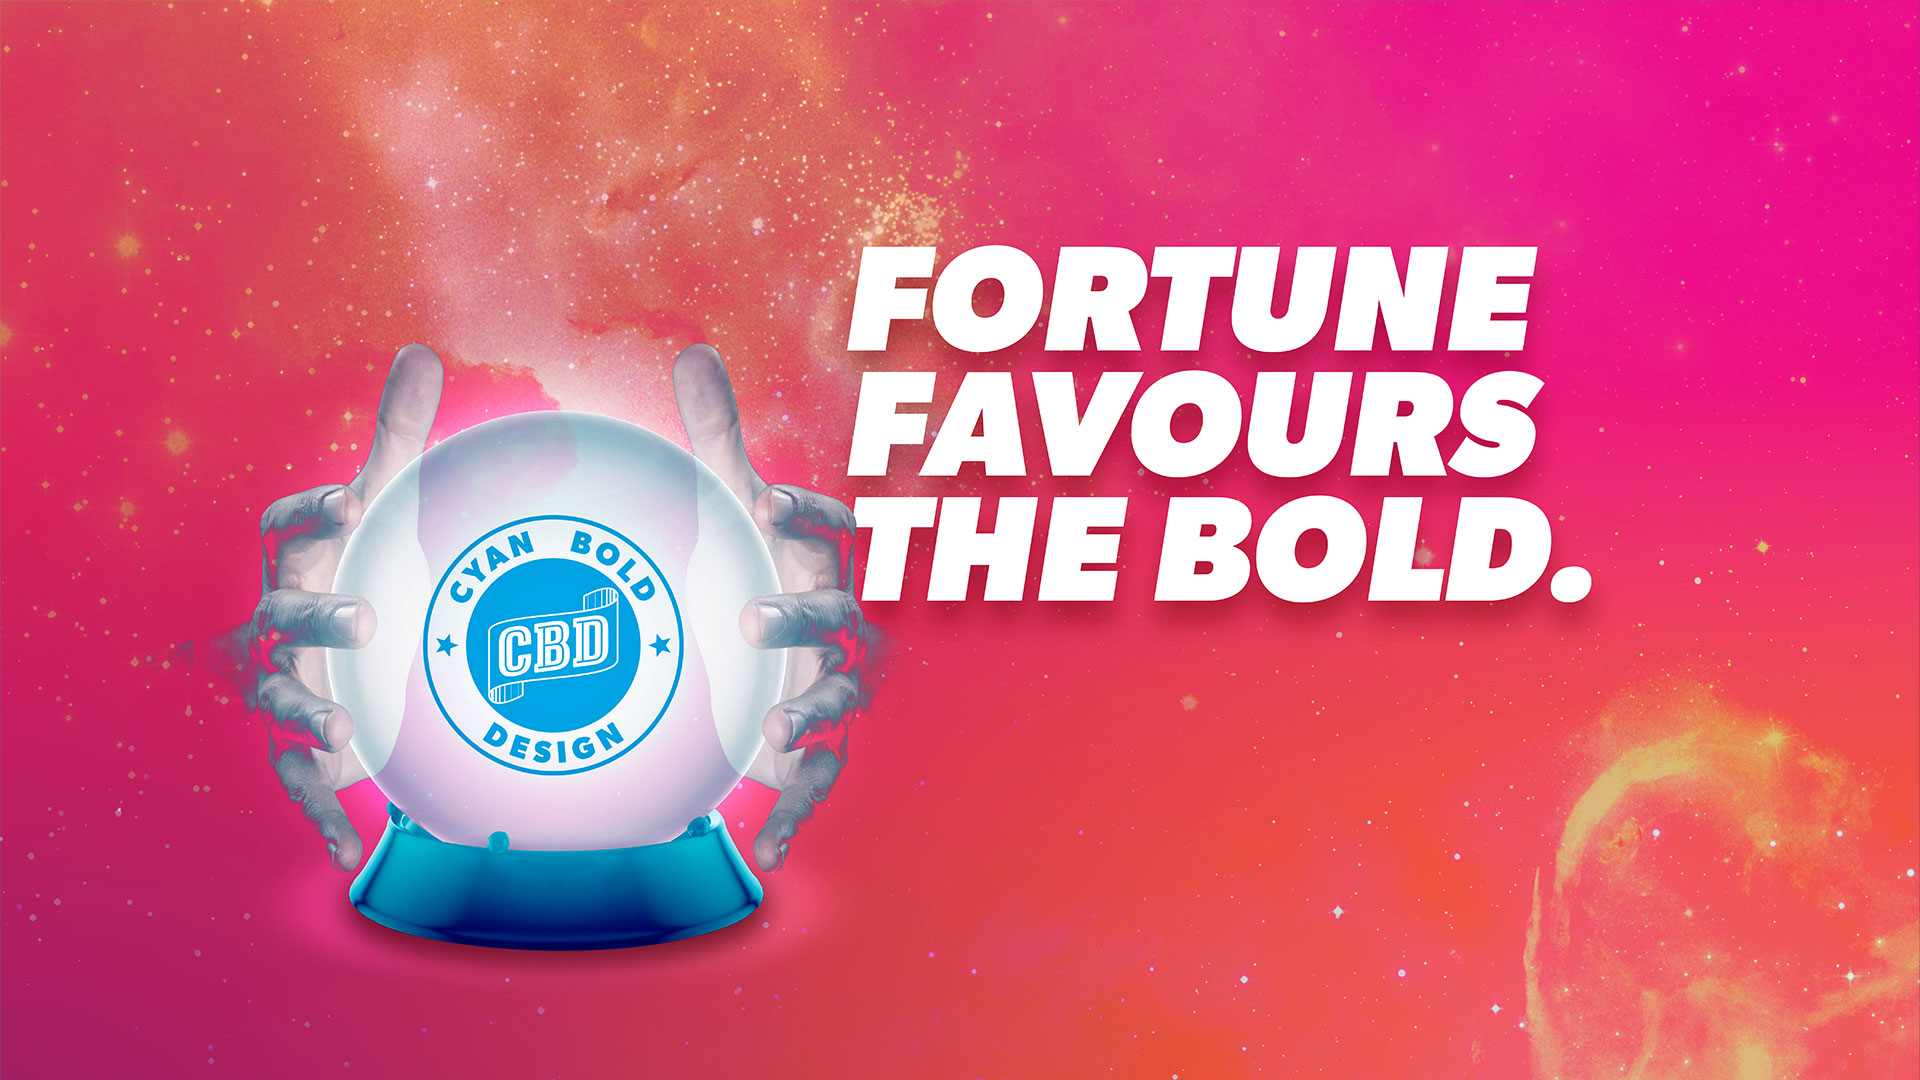 Fortune Favours the Bold.